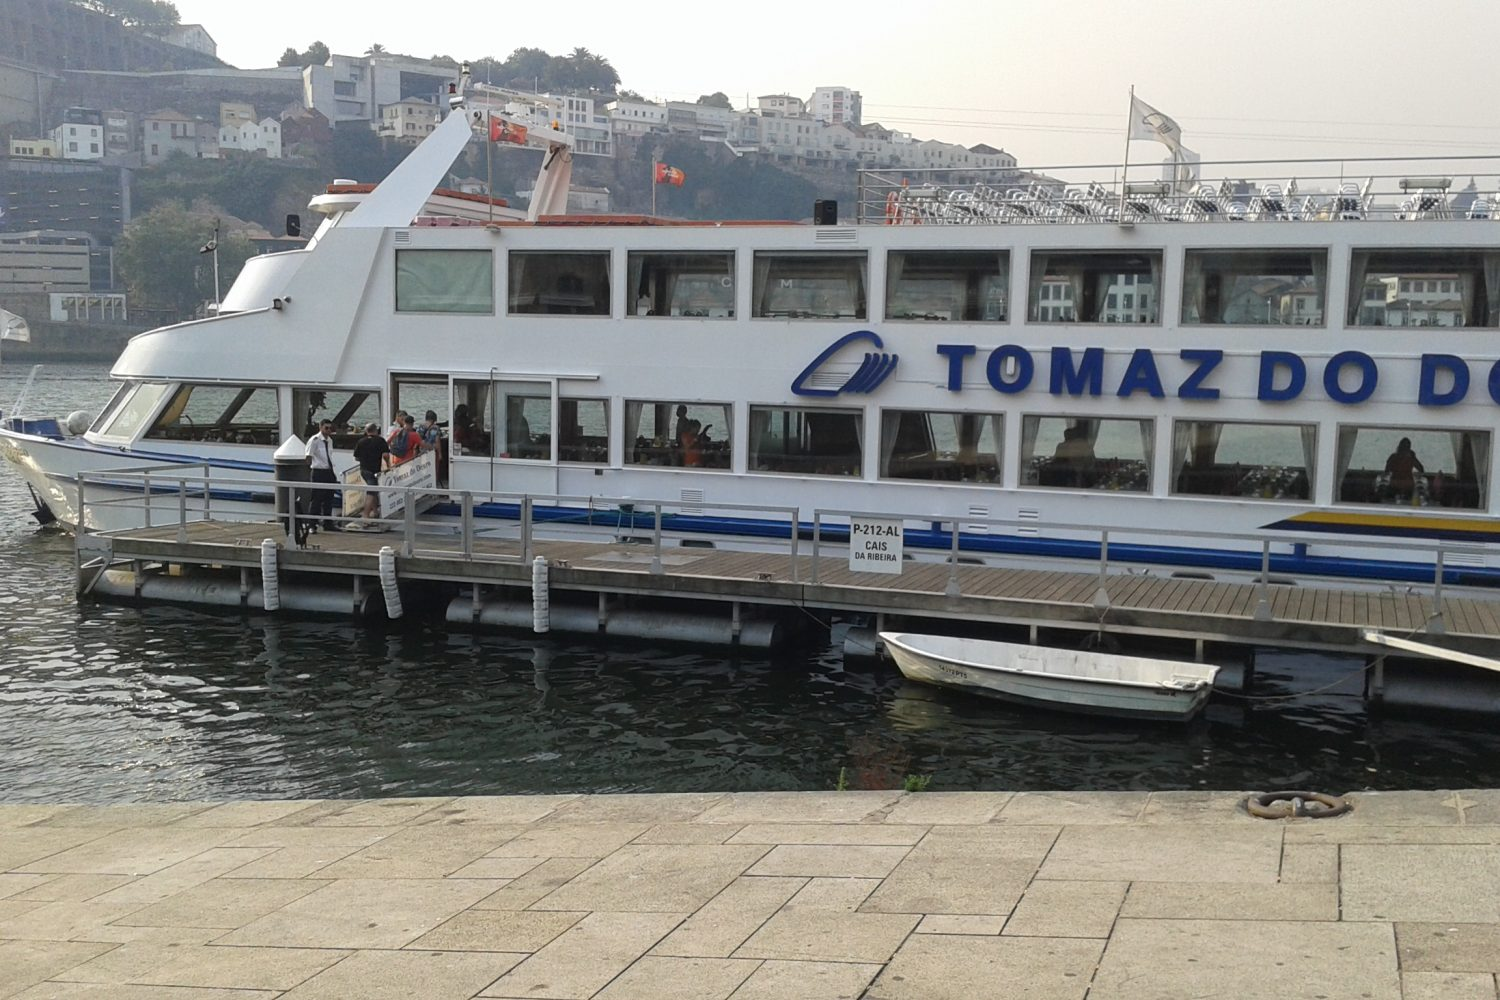 People getting in for a douro cruise